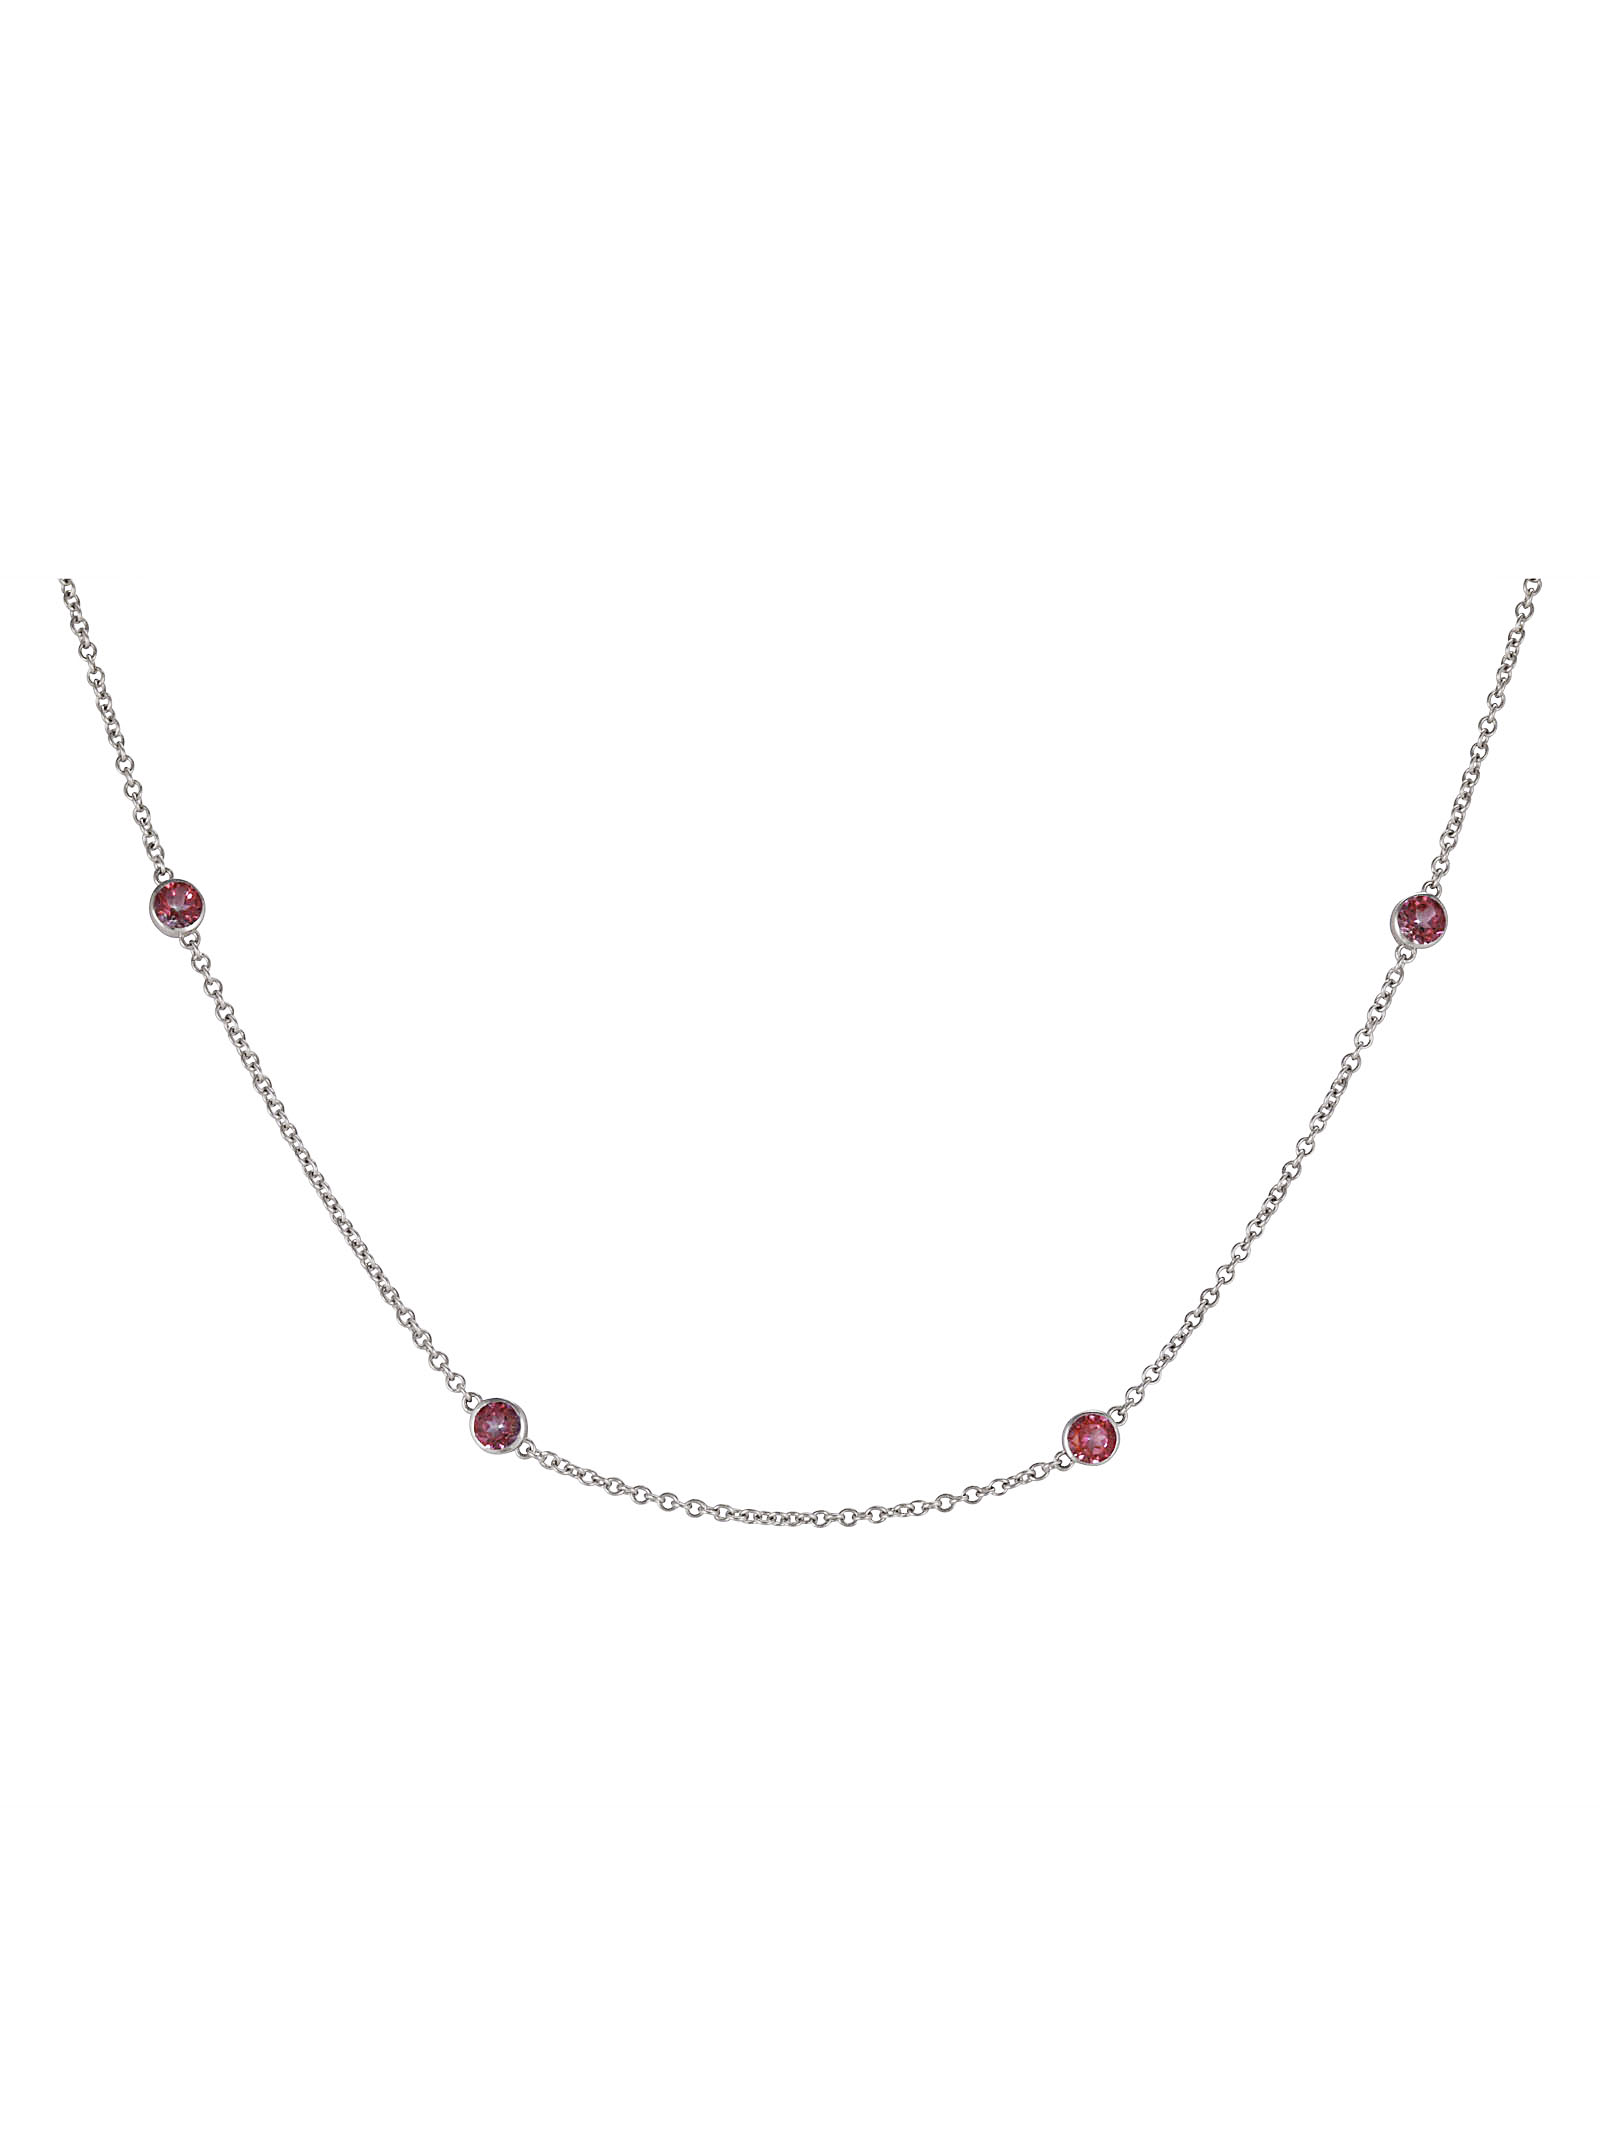 Passion Pink Necklace